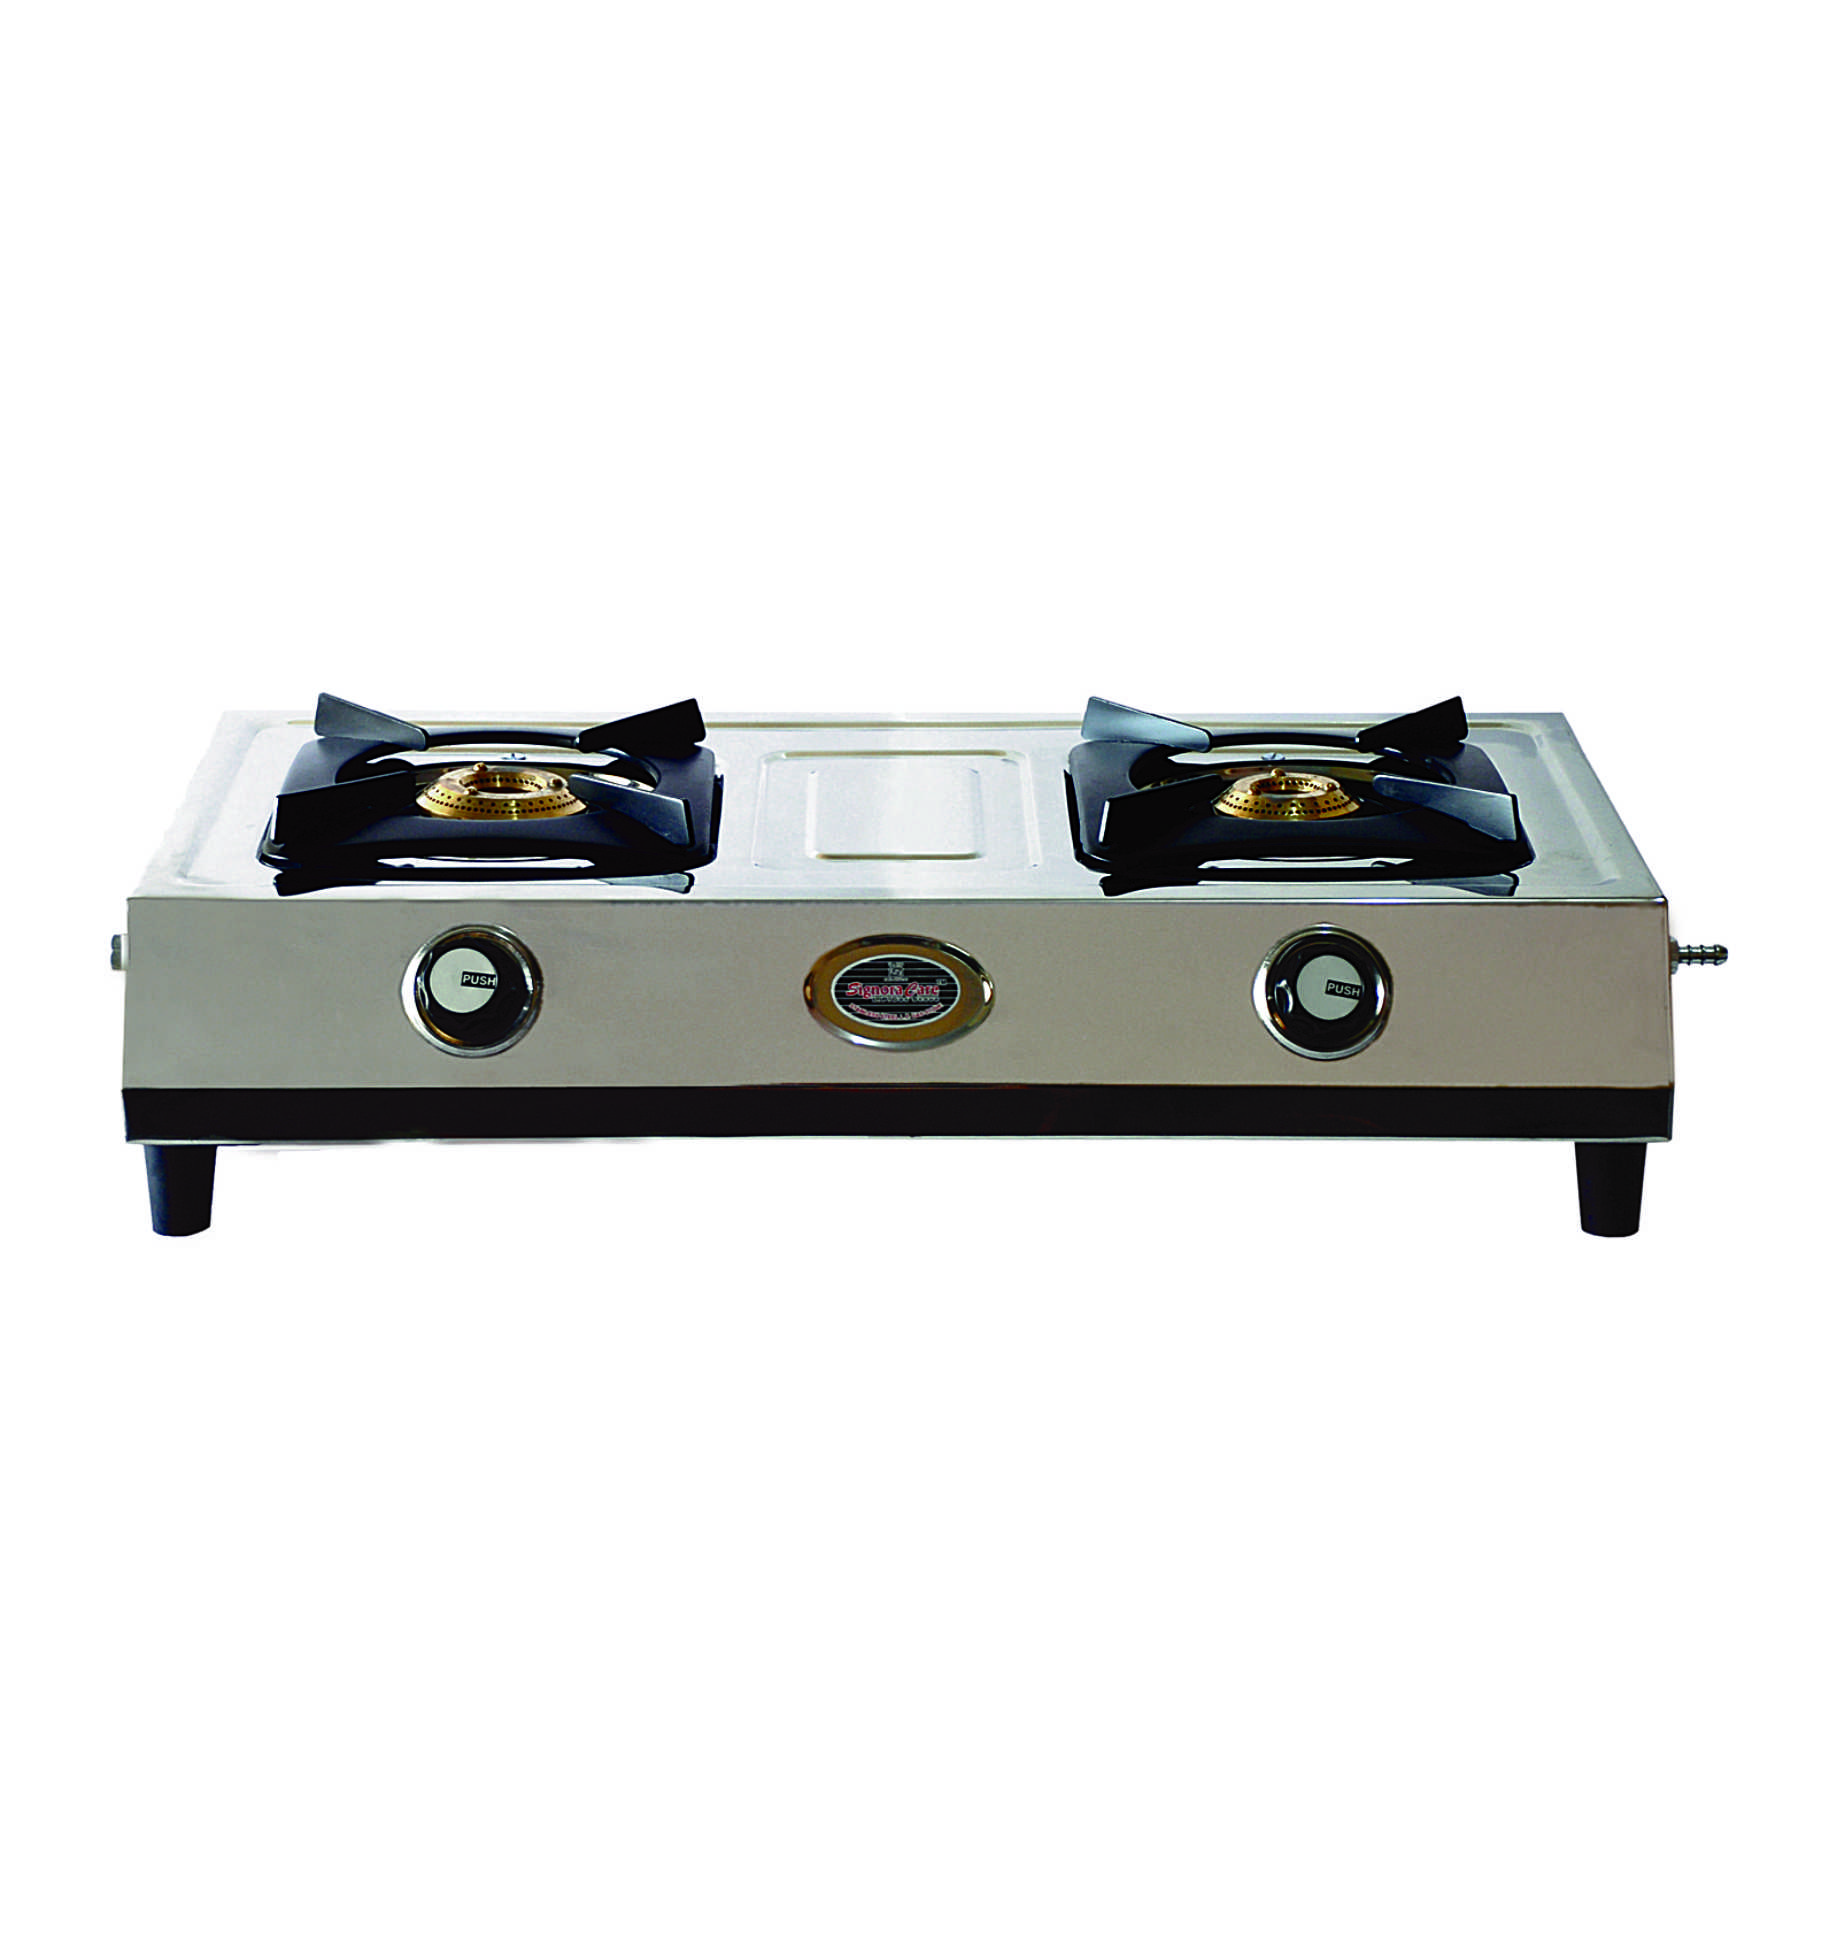 SignoraCare Stainless Steel 2 Burner with Heavy Body